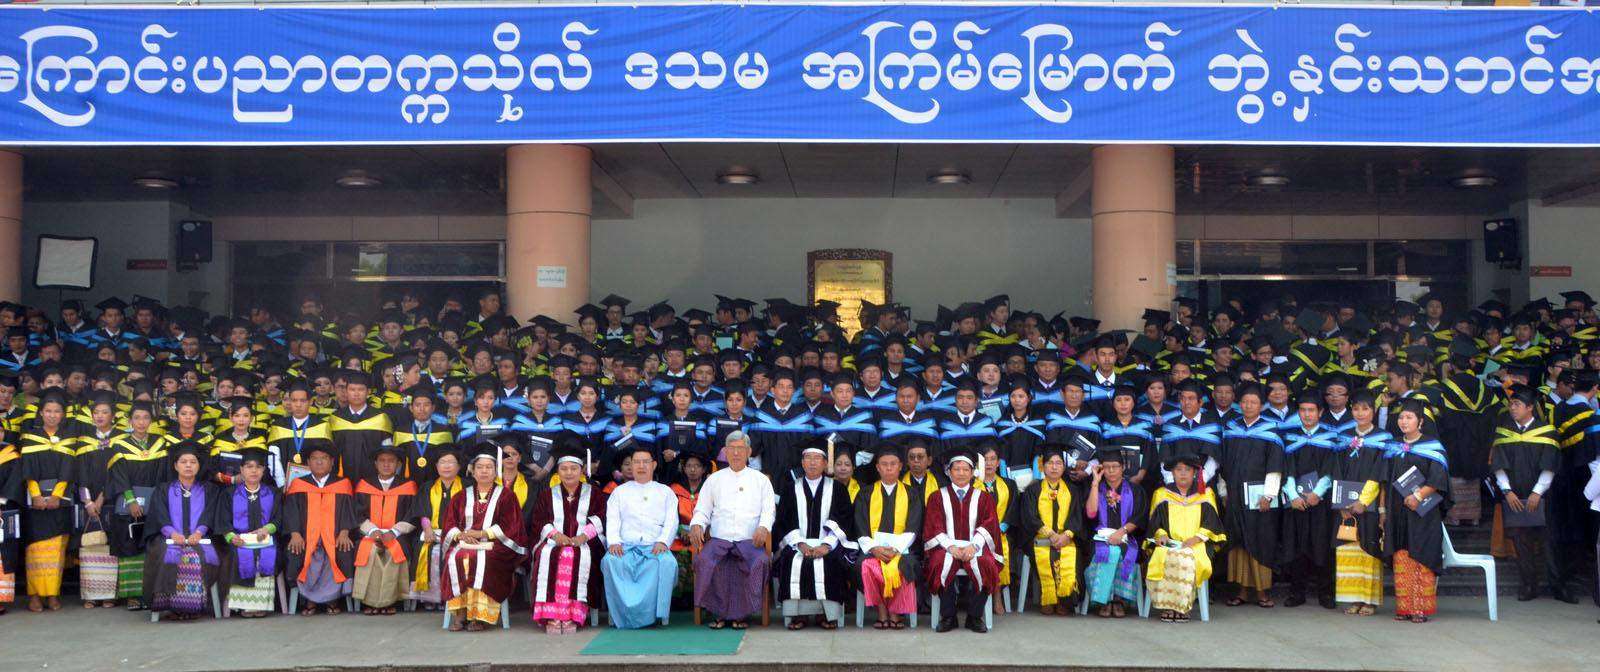 Graduates of 10th graduation of Myanmar Maritime University pose for photo ourside convocation hall. Photo: Supplied